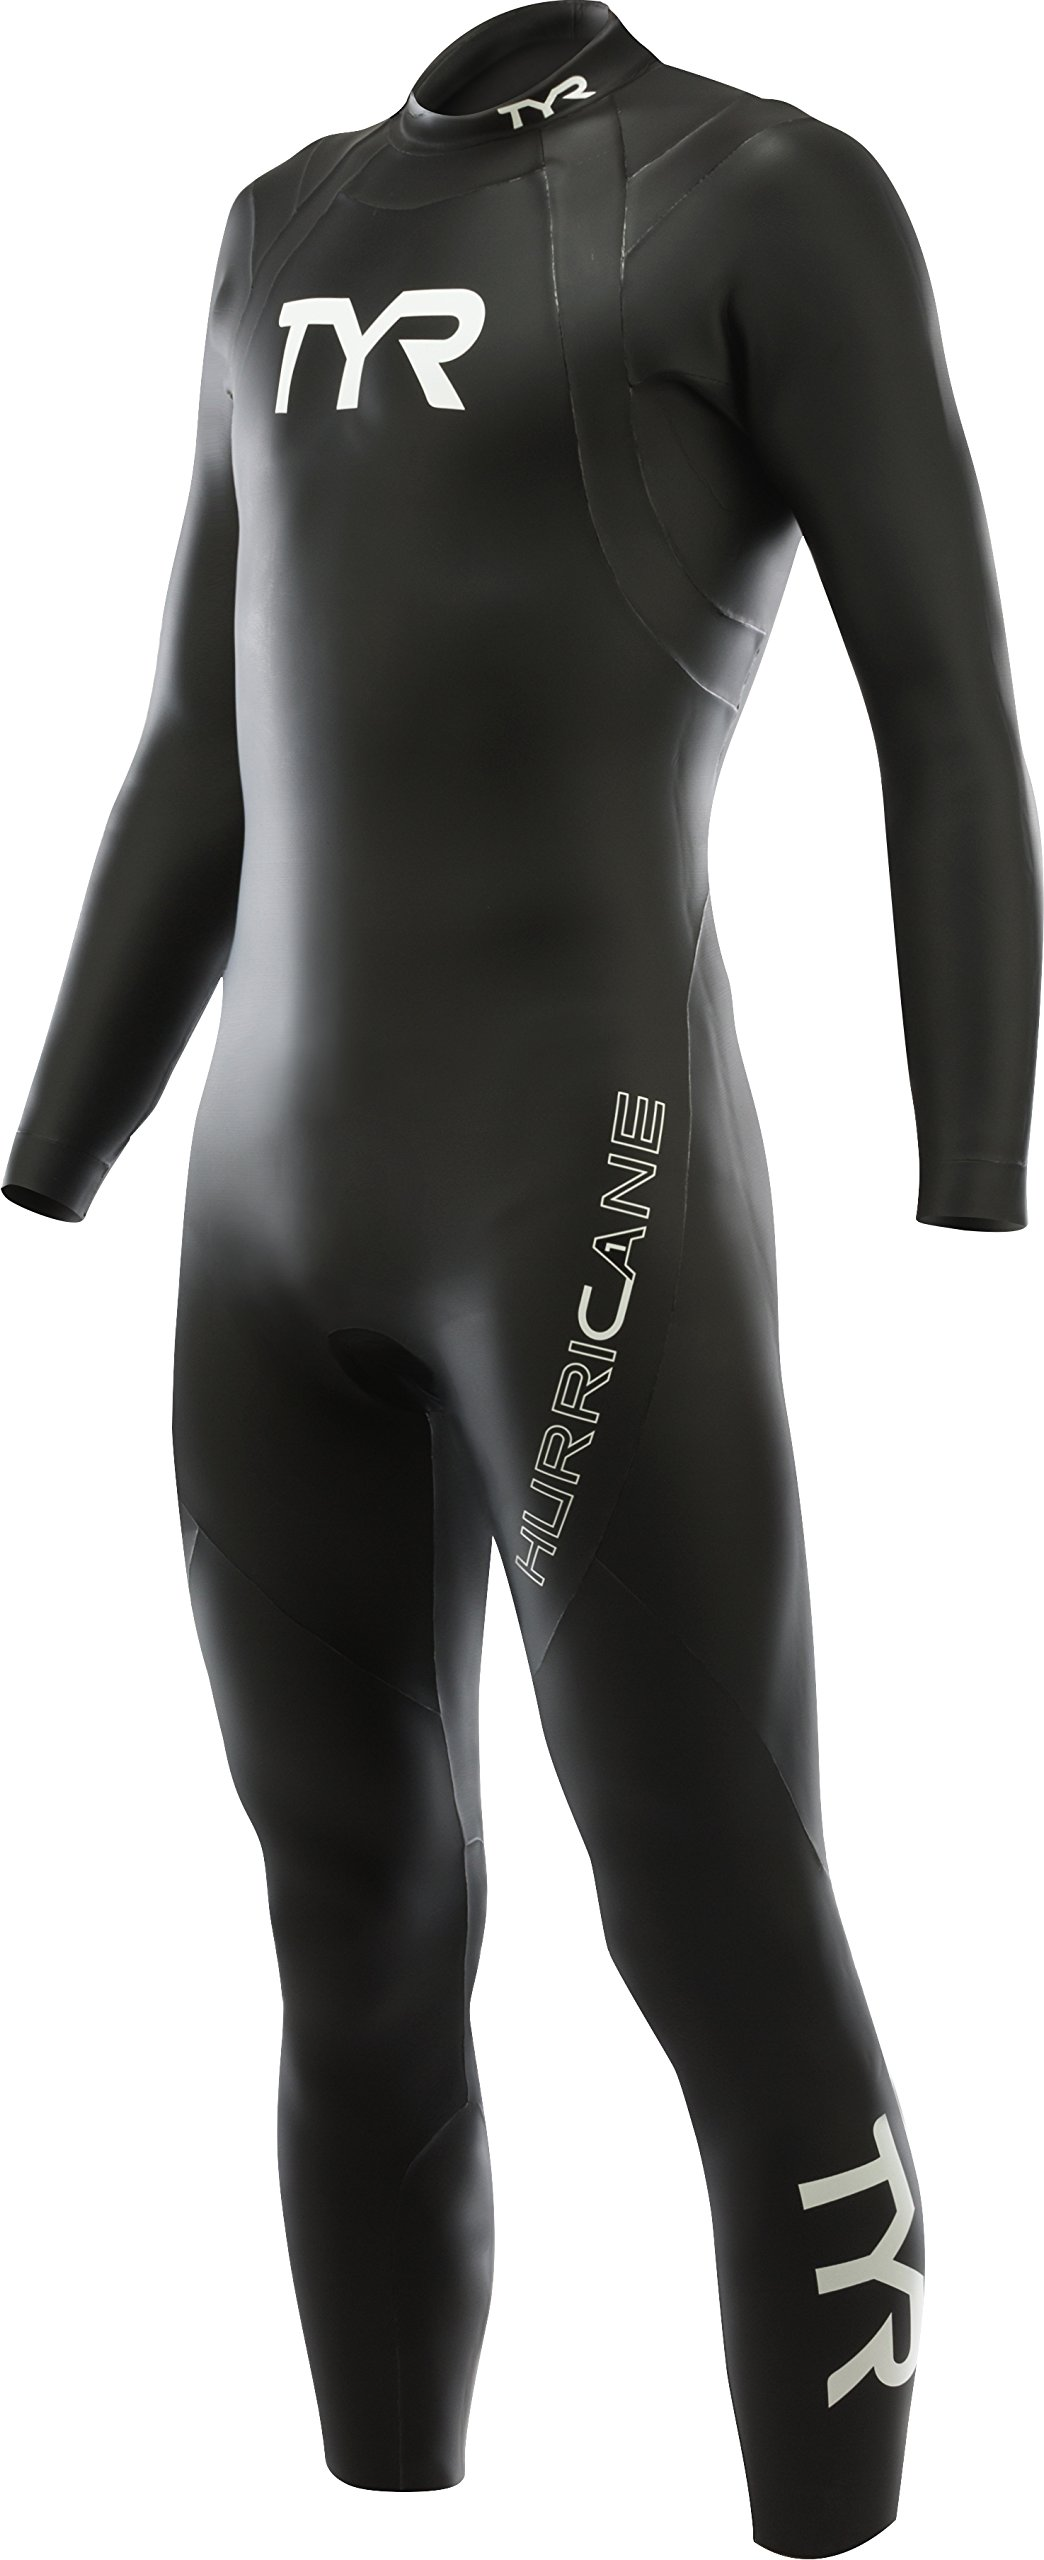 TYR Men's Hurricane Wetsuit Category 1, Black/White, Small/Medium by TYR